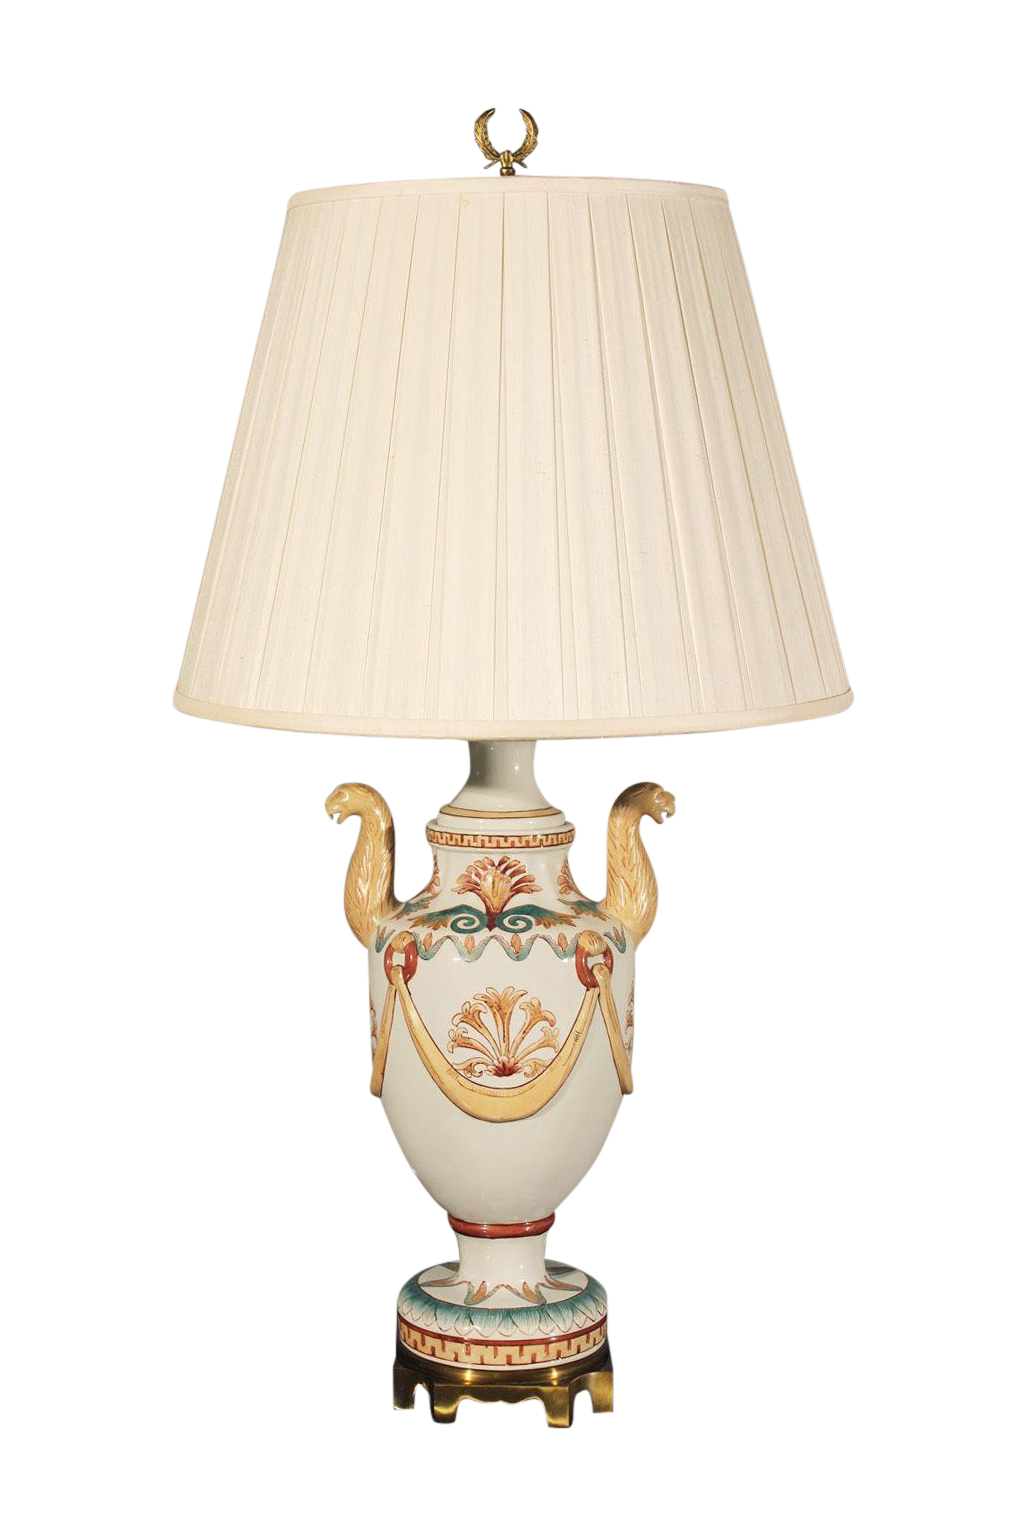 Vintage Maitland-Smith Neoclassical Porcelain L&  sc 1 st  Chairish & Vintage u0026 Used Maitland - Smith Lighting | Chairish azcodes.com